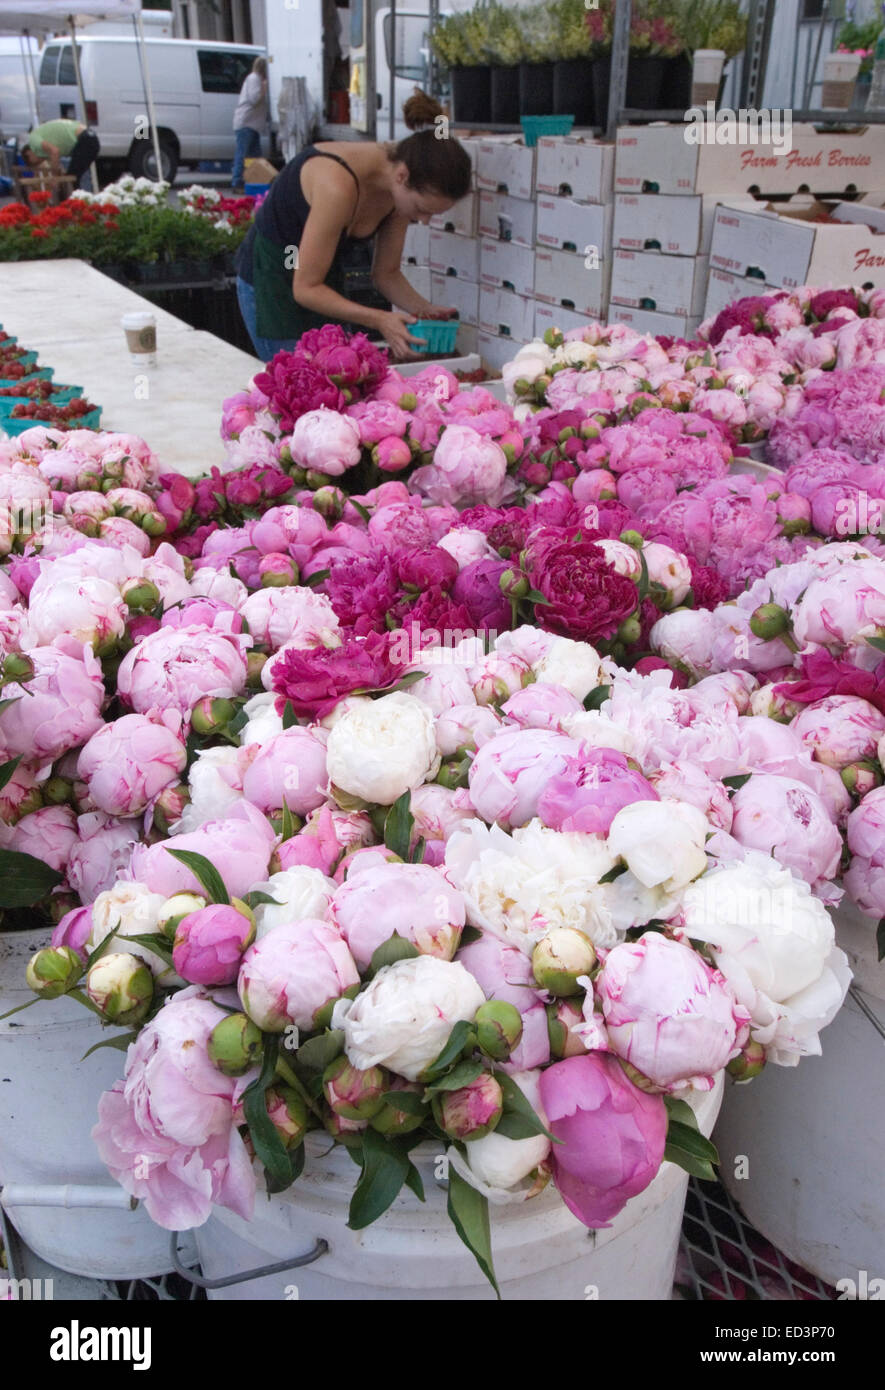 Peonies for sale at Union Square Market in New York City - Stock Image